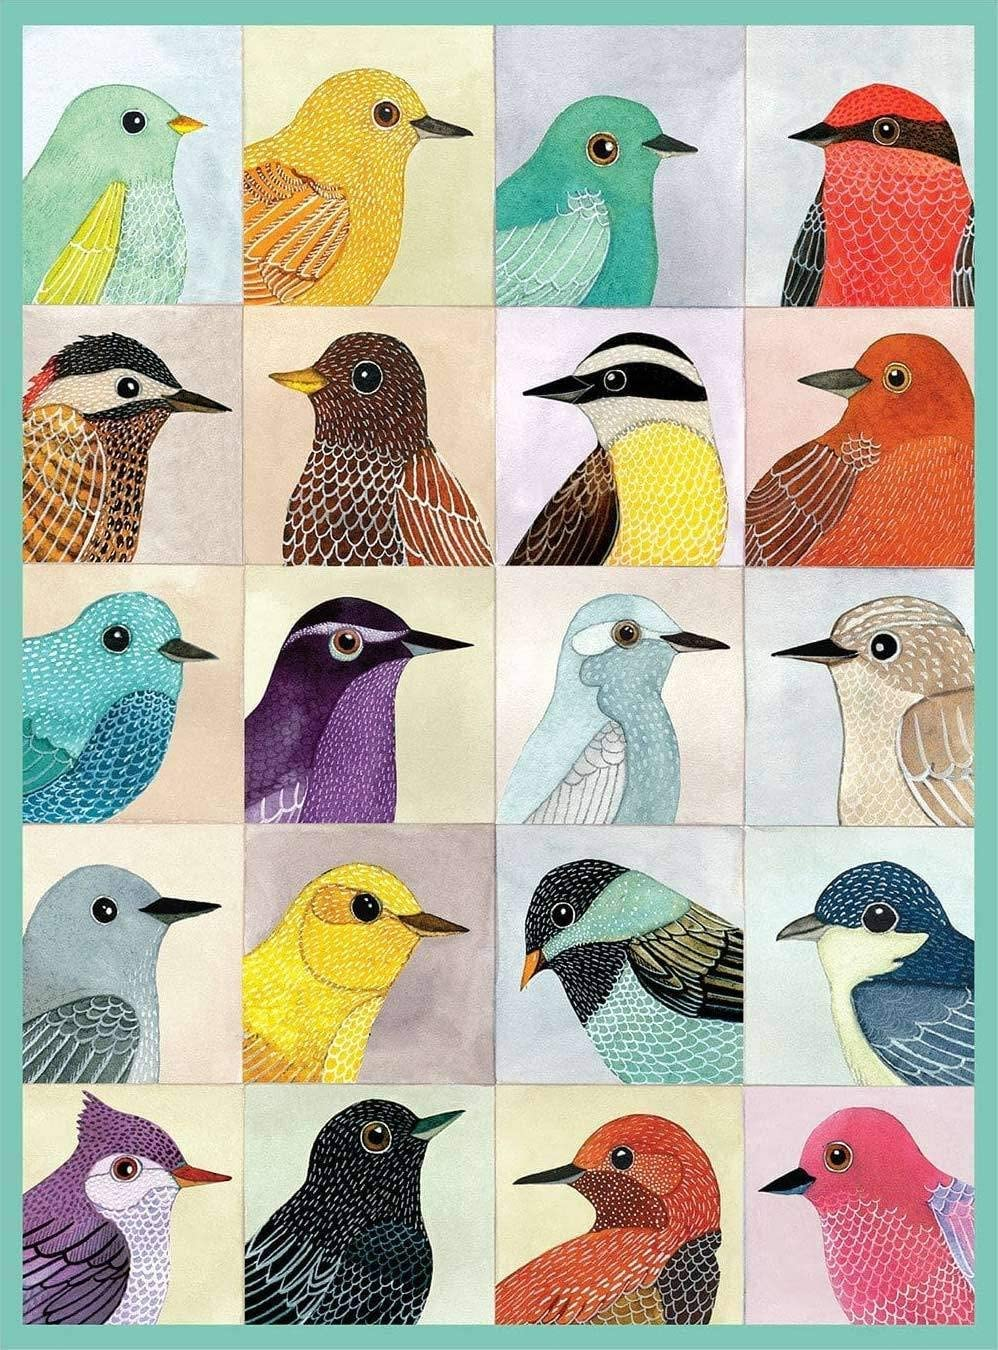 Avian Friends, 1000 Piece Puzzle